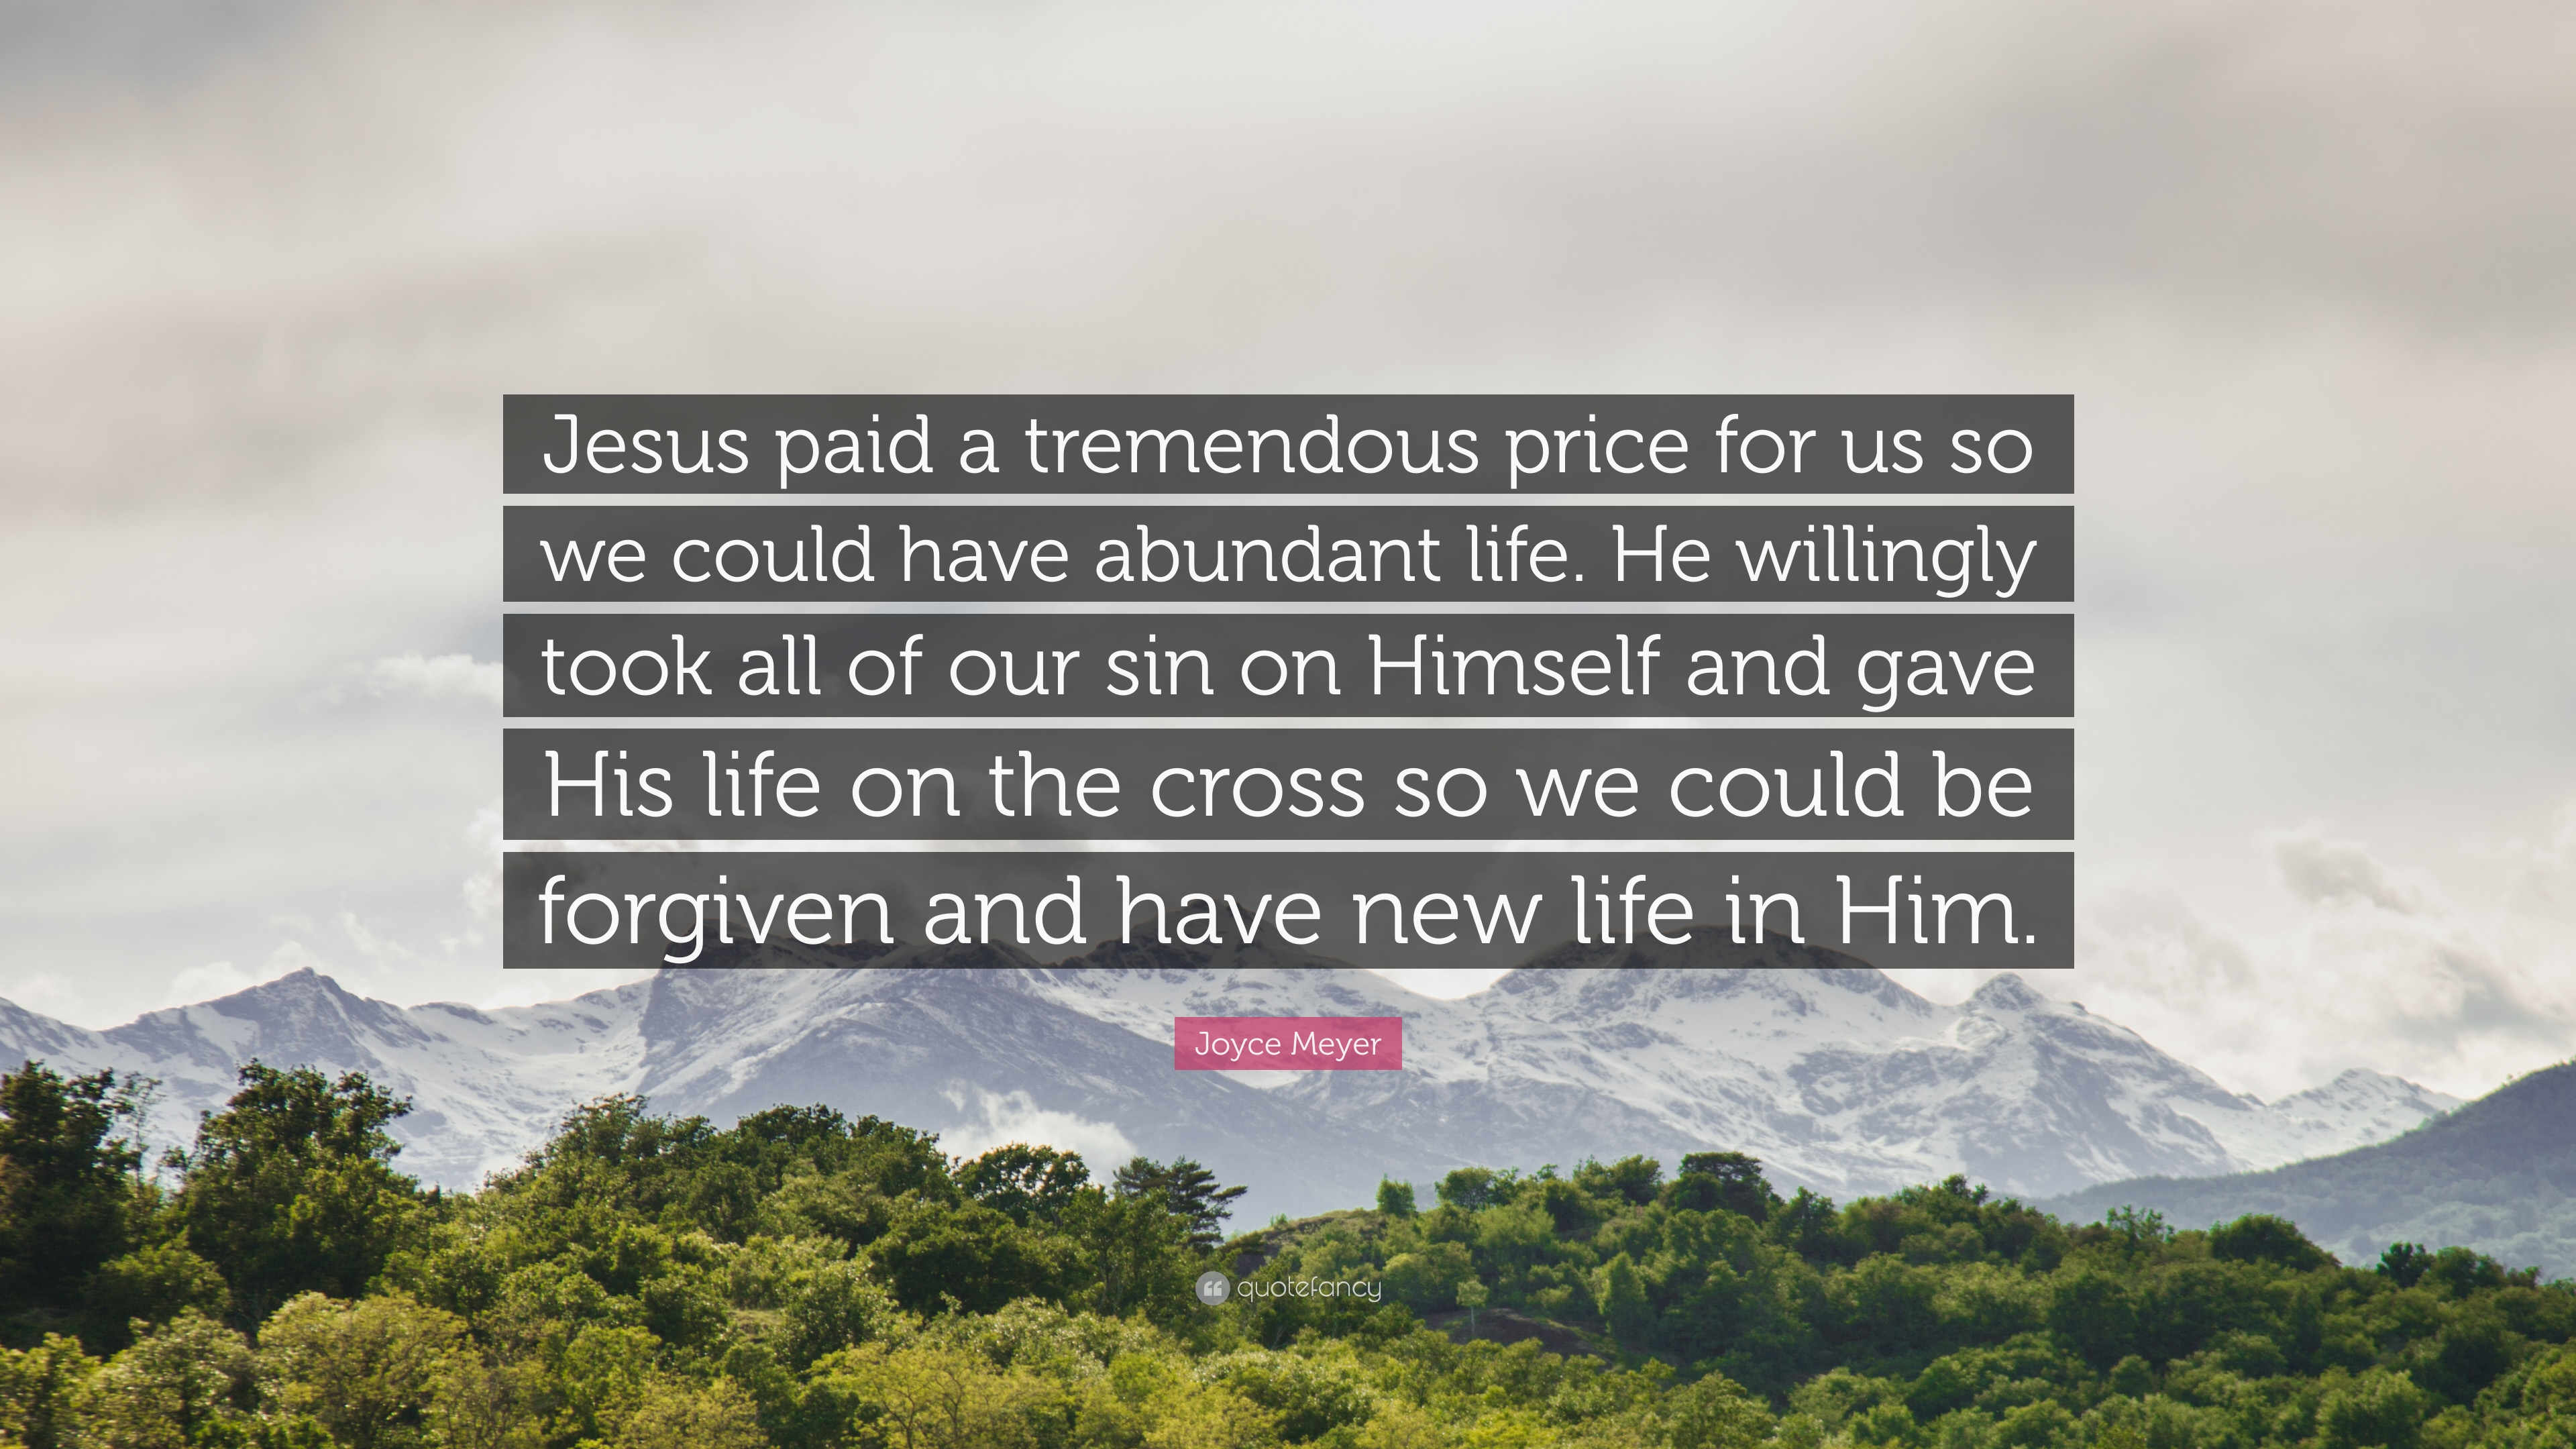 joyce meyer quote jesus paid a tremendous price for us so we joyce meyer quote jesus paid a tremendous price for us so we could have